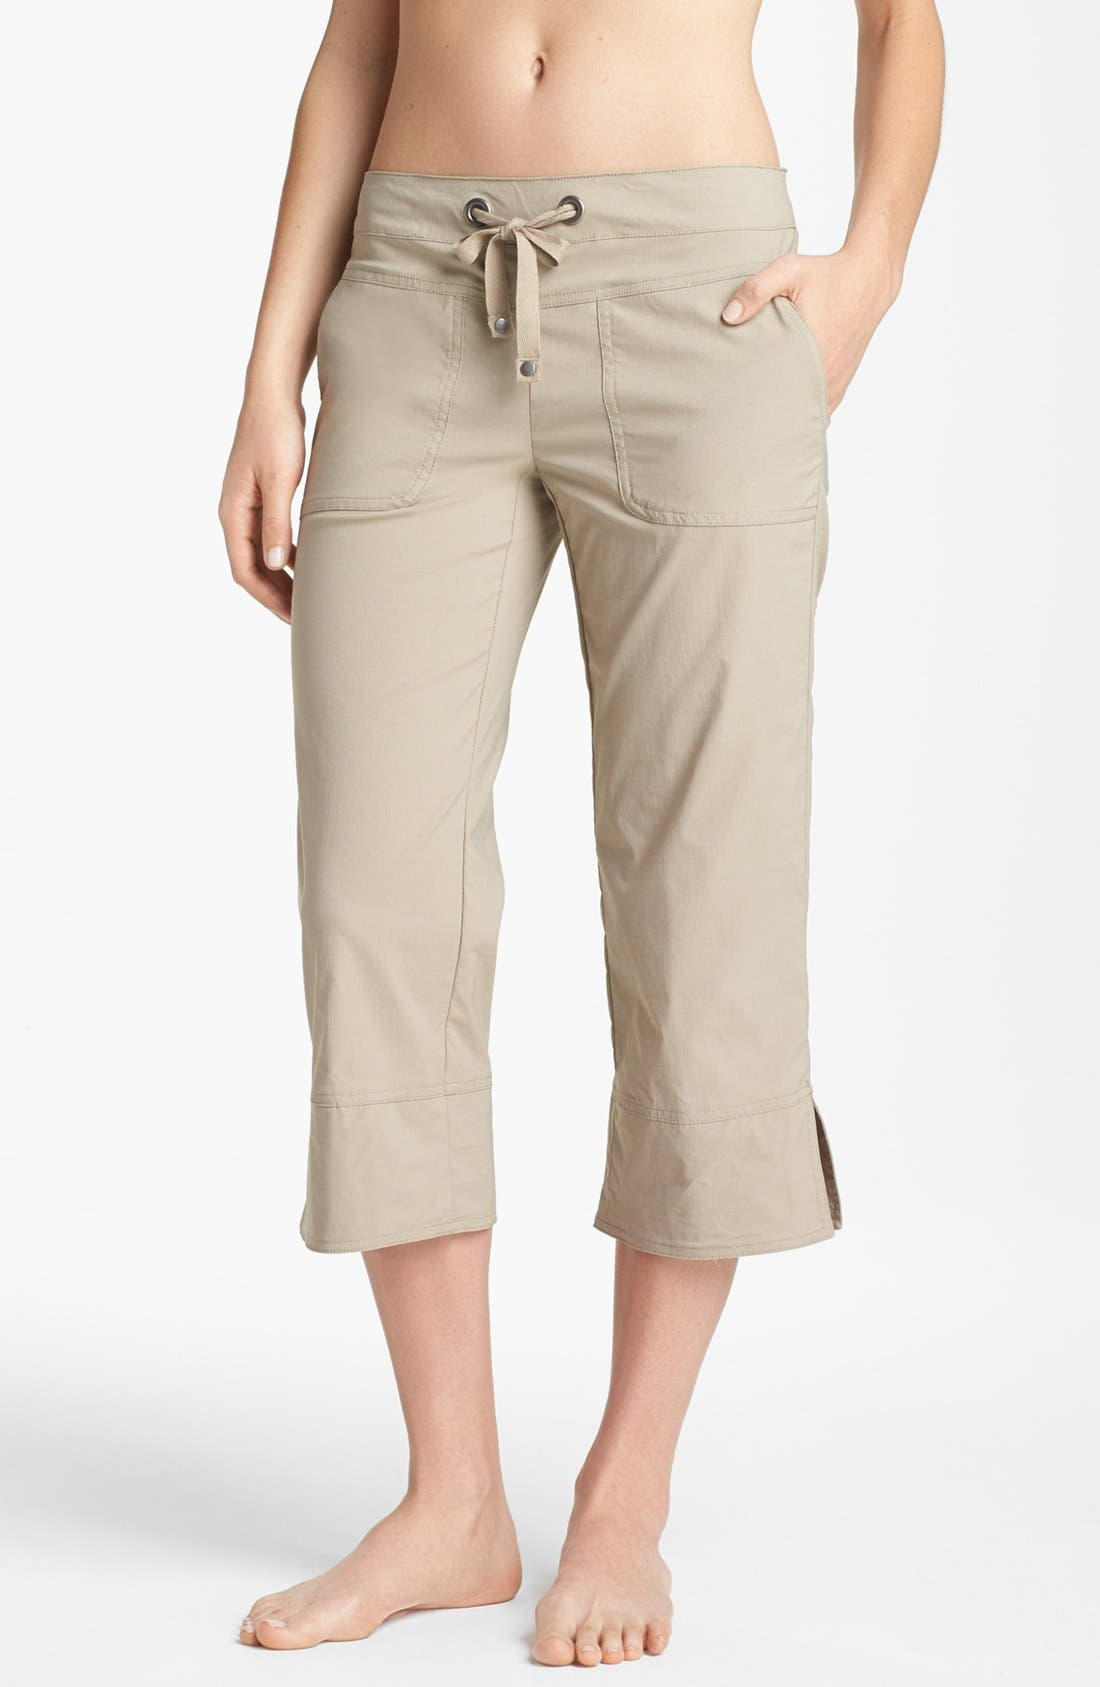 Alternate Image 1 Selected - prAna 'Bliss' Capri Pants